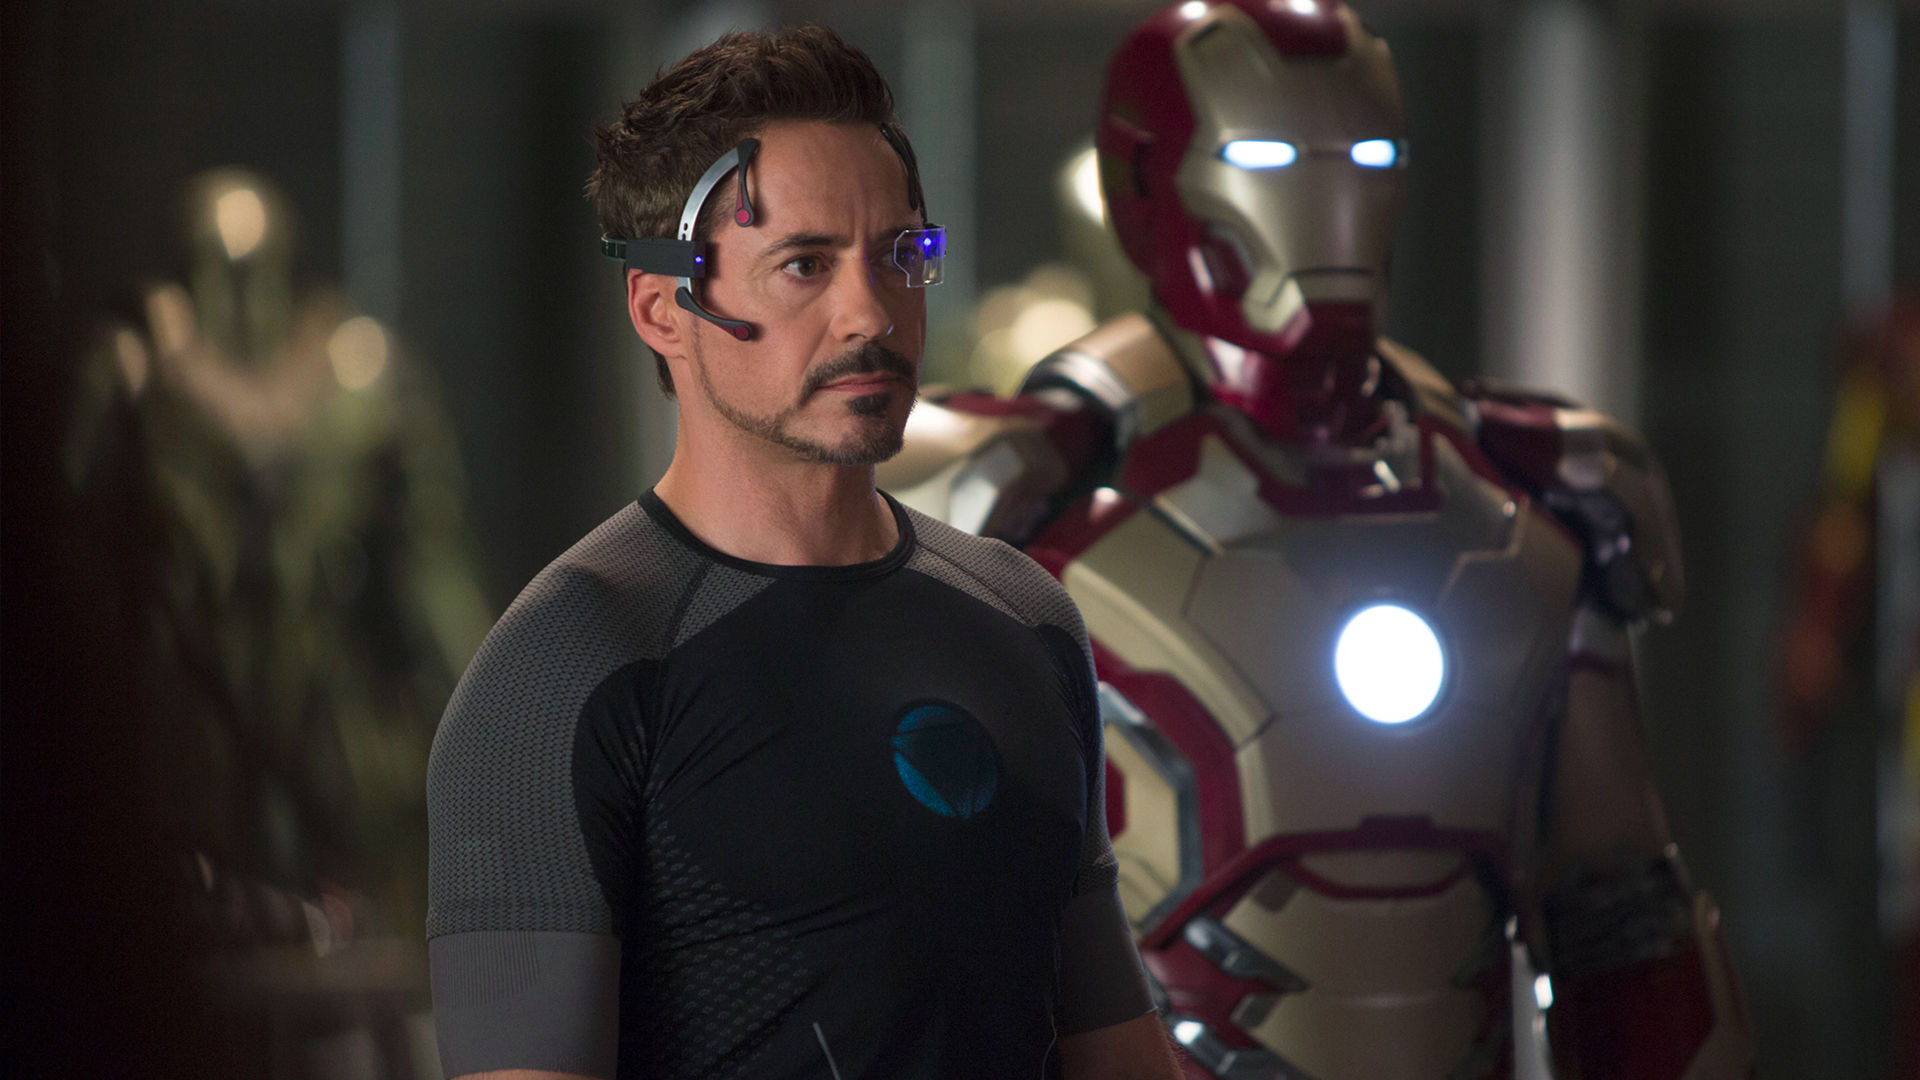 Forbes Highest Top 10 Paid Actors List 2015 Iron Man Superhero Robert Downey Jr Tops 3rd Time